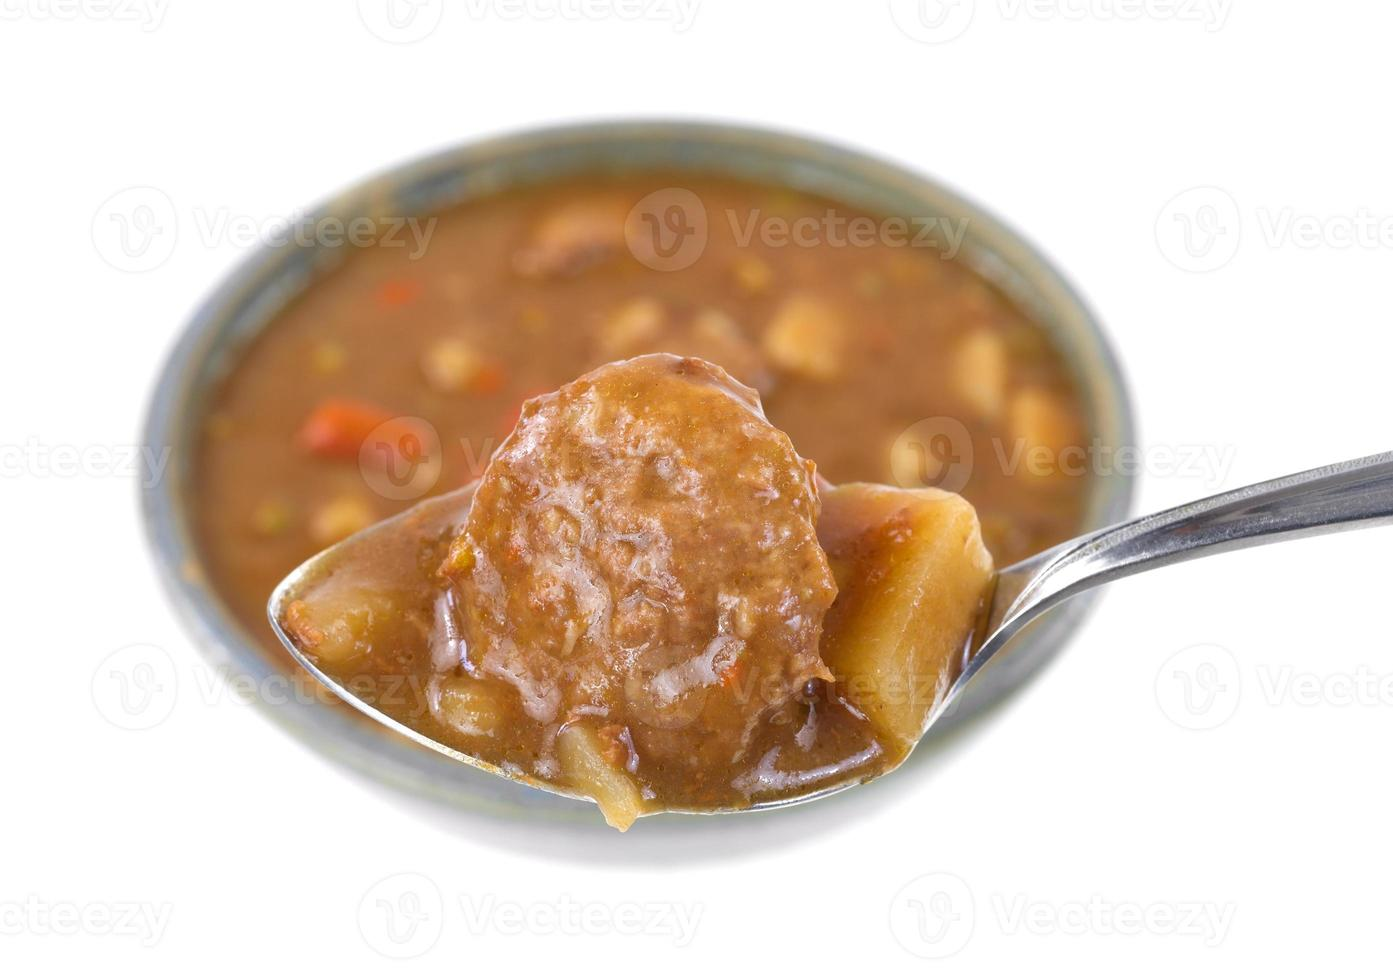 Meatball and potatoes on a spoon with meal in background photo